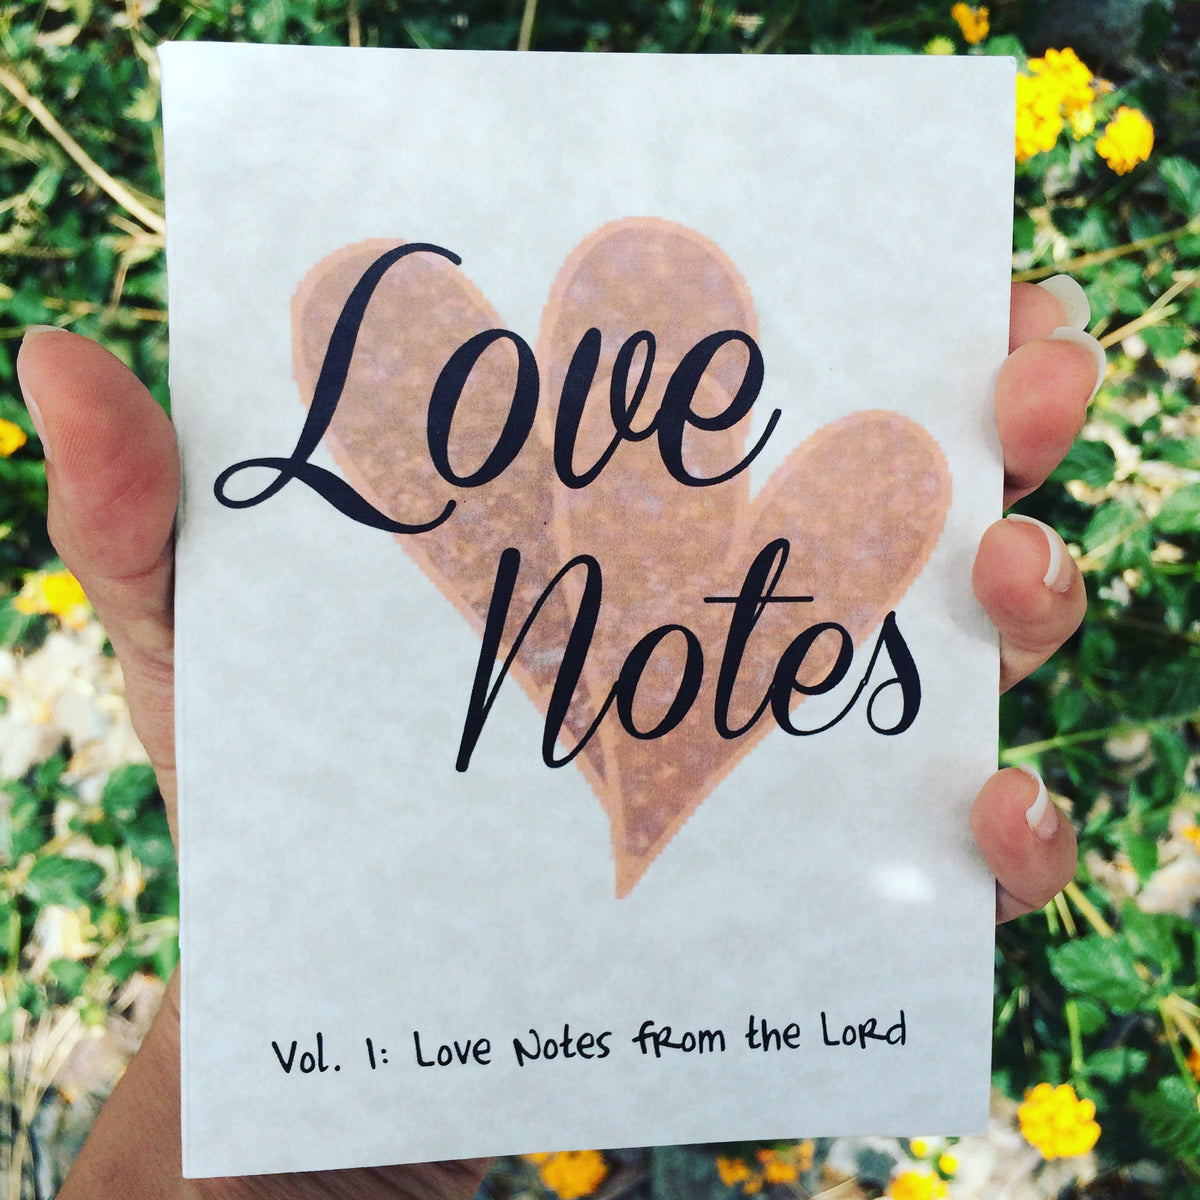 Love Notes from the Lord are a simple way to share the love of God through Scripture, for anyone and everyone. Just tear, fold, and share! Ministry made simple